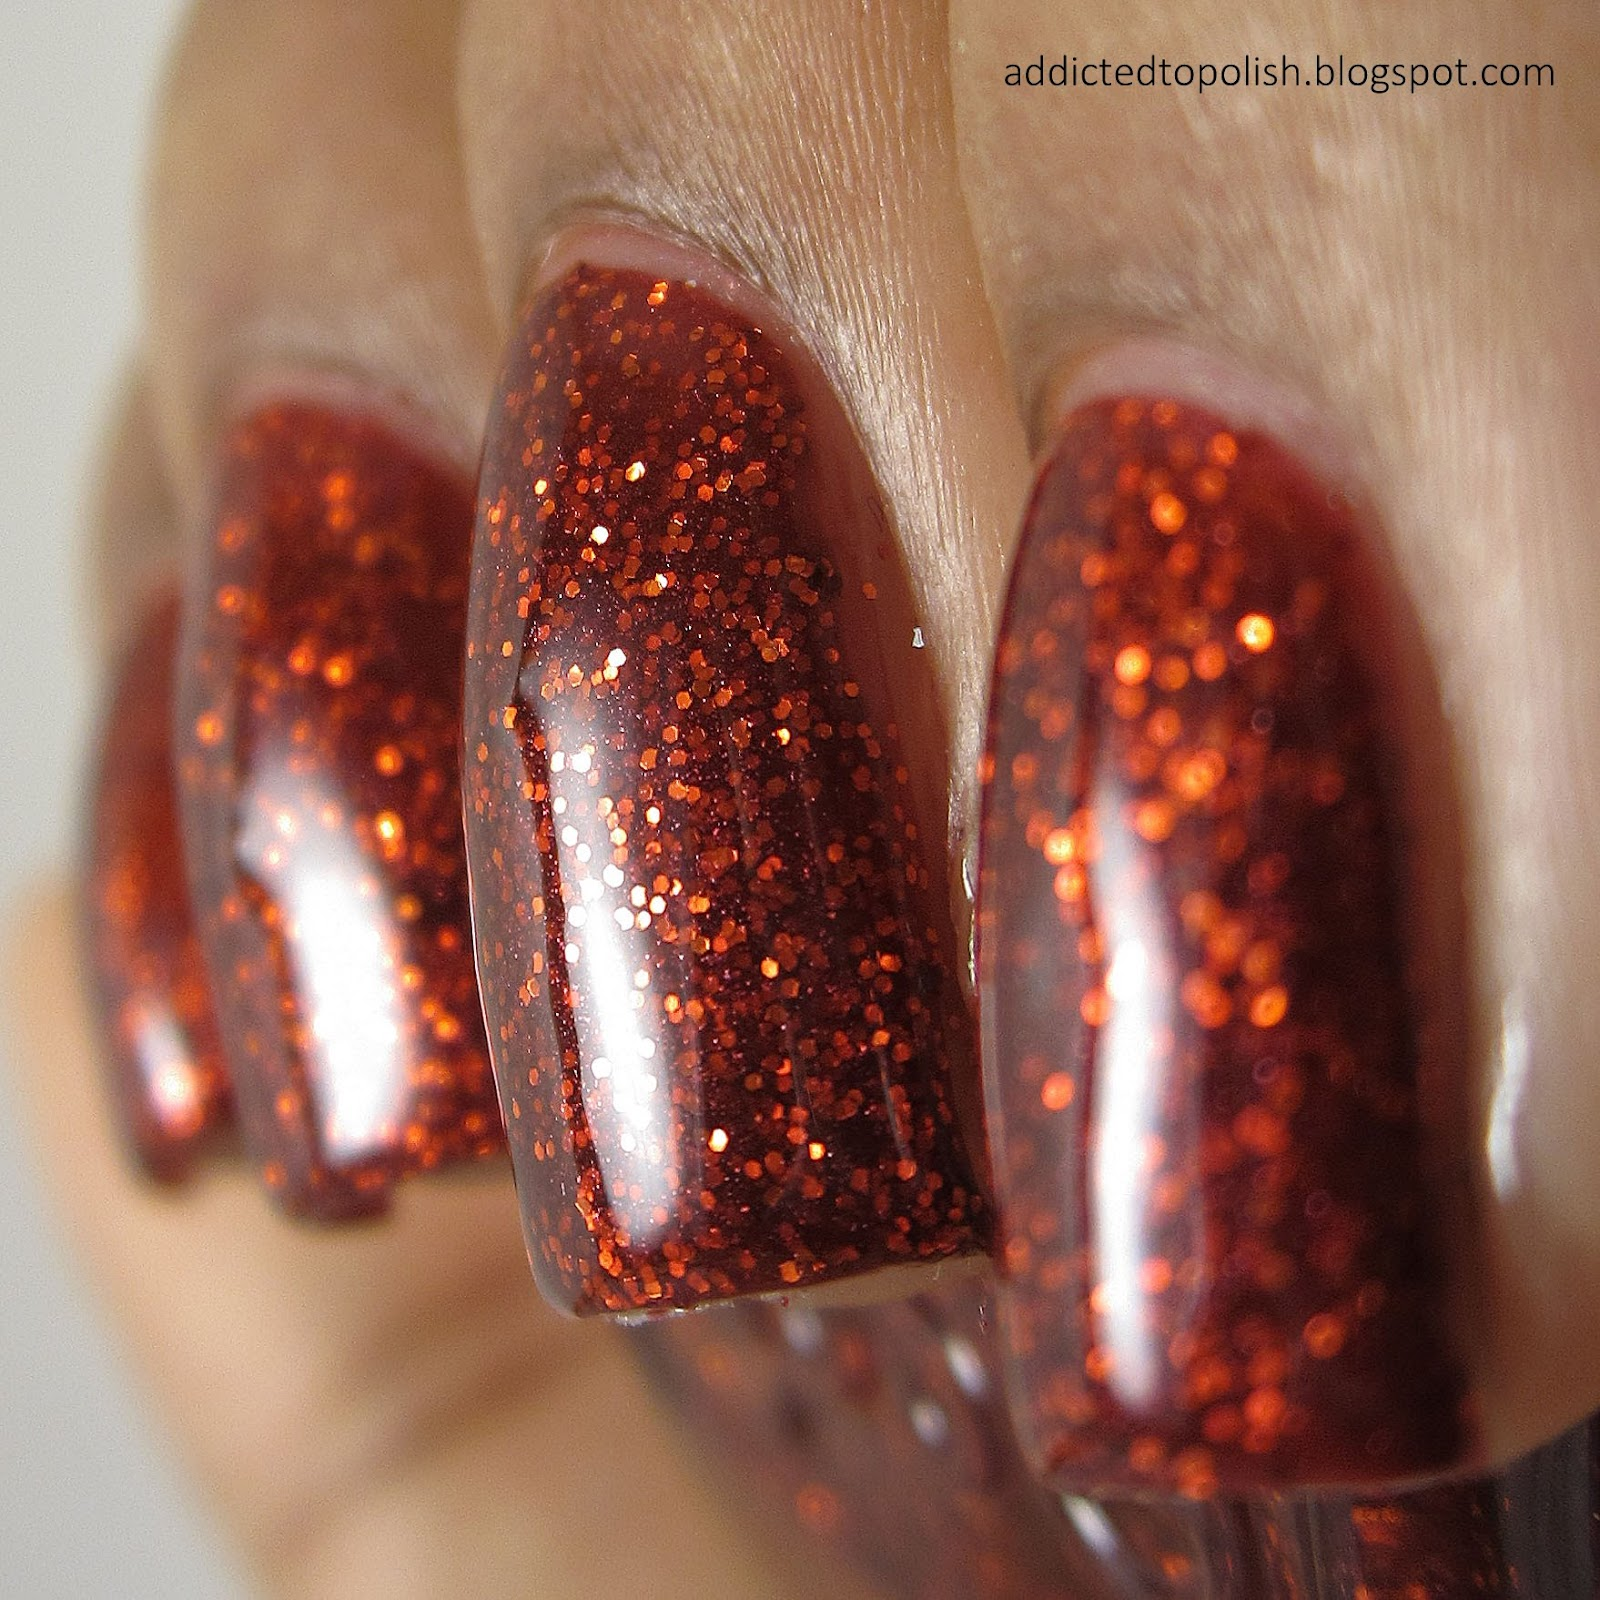 Essie-Ruby-Slippers-Red-Glitter-Nail-Polish